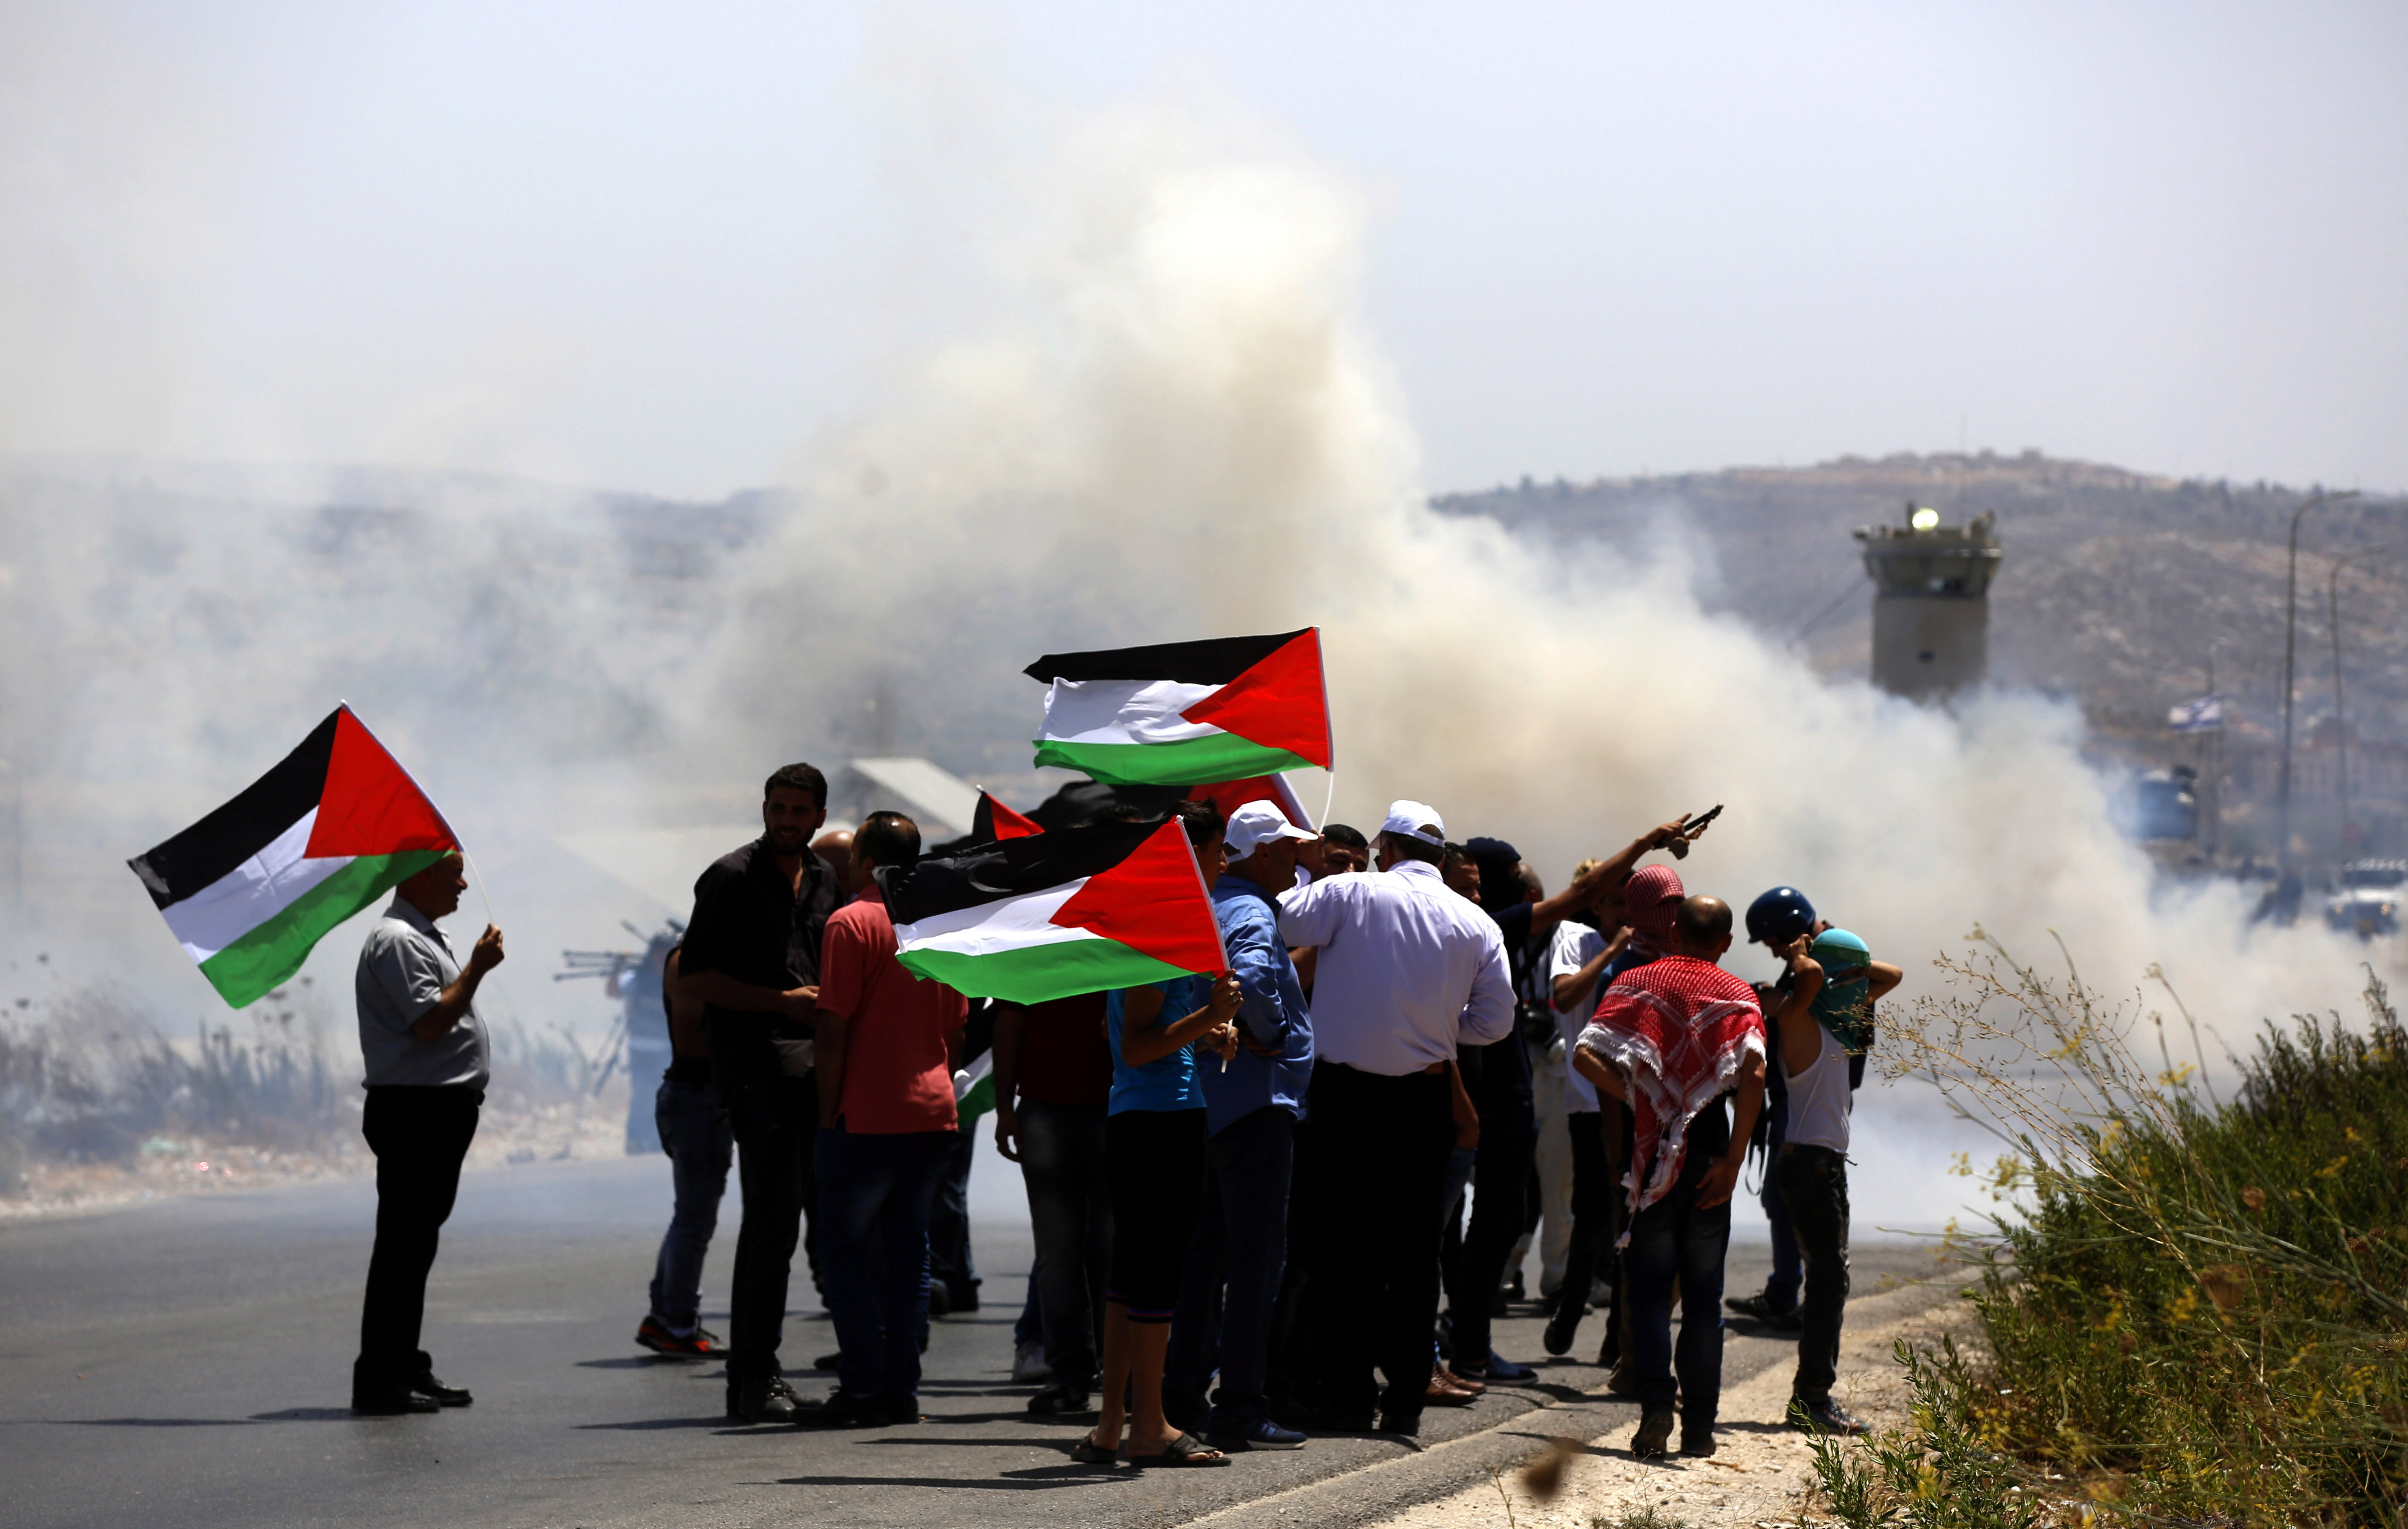 Palestinians protest in support with the al-Aqsa Mosque in Nablus